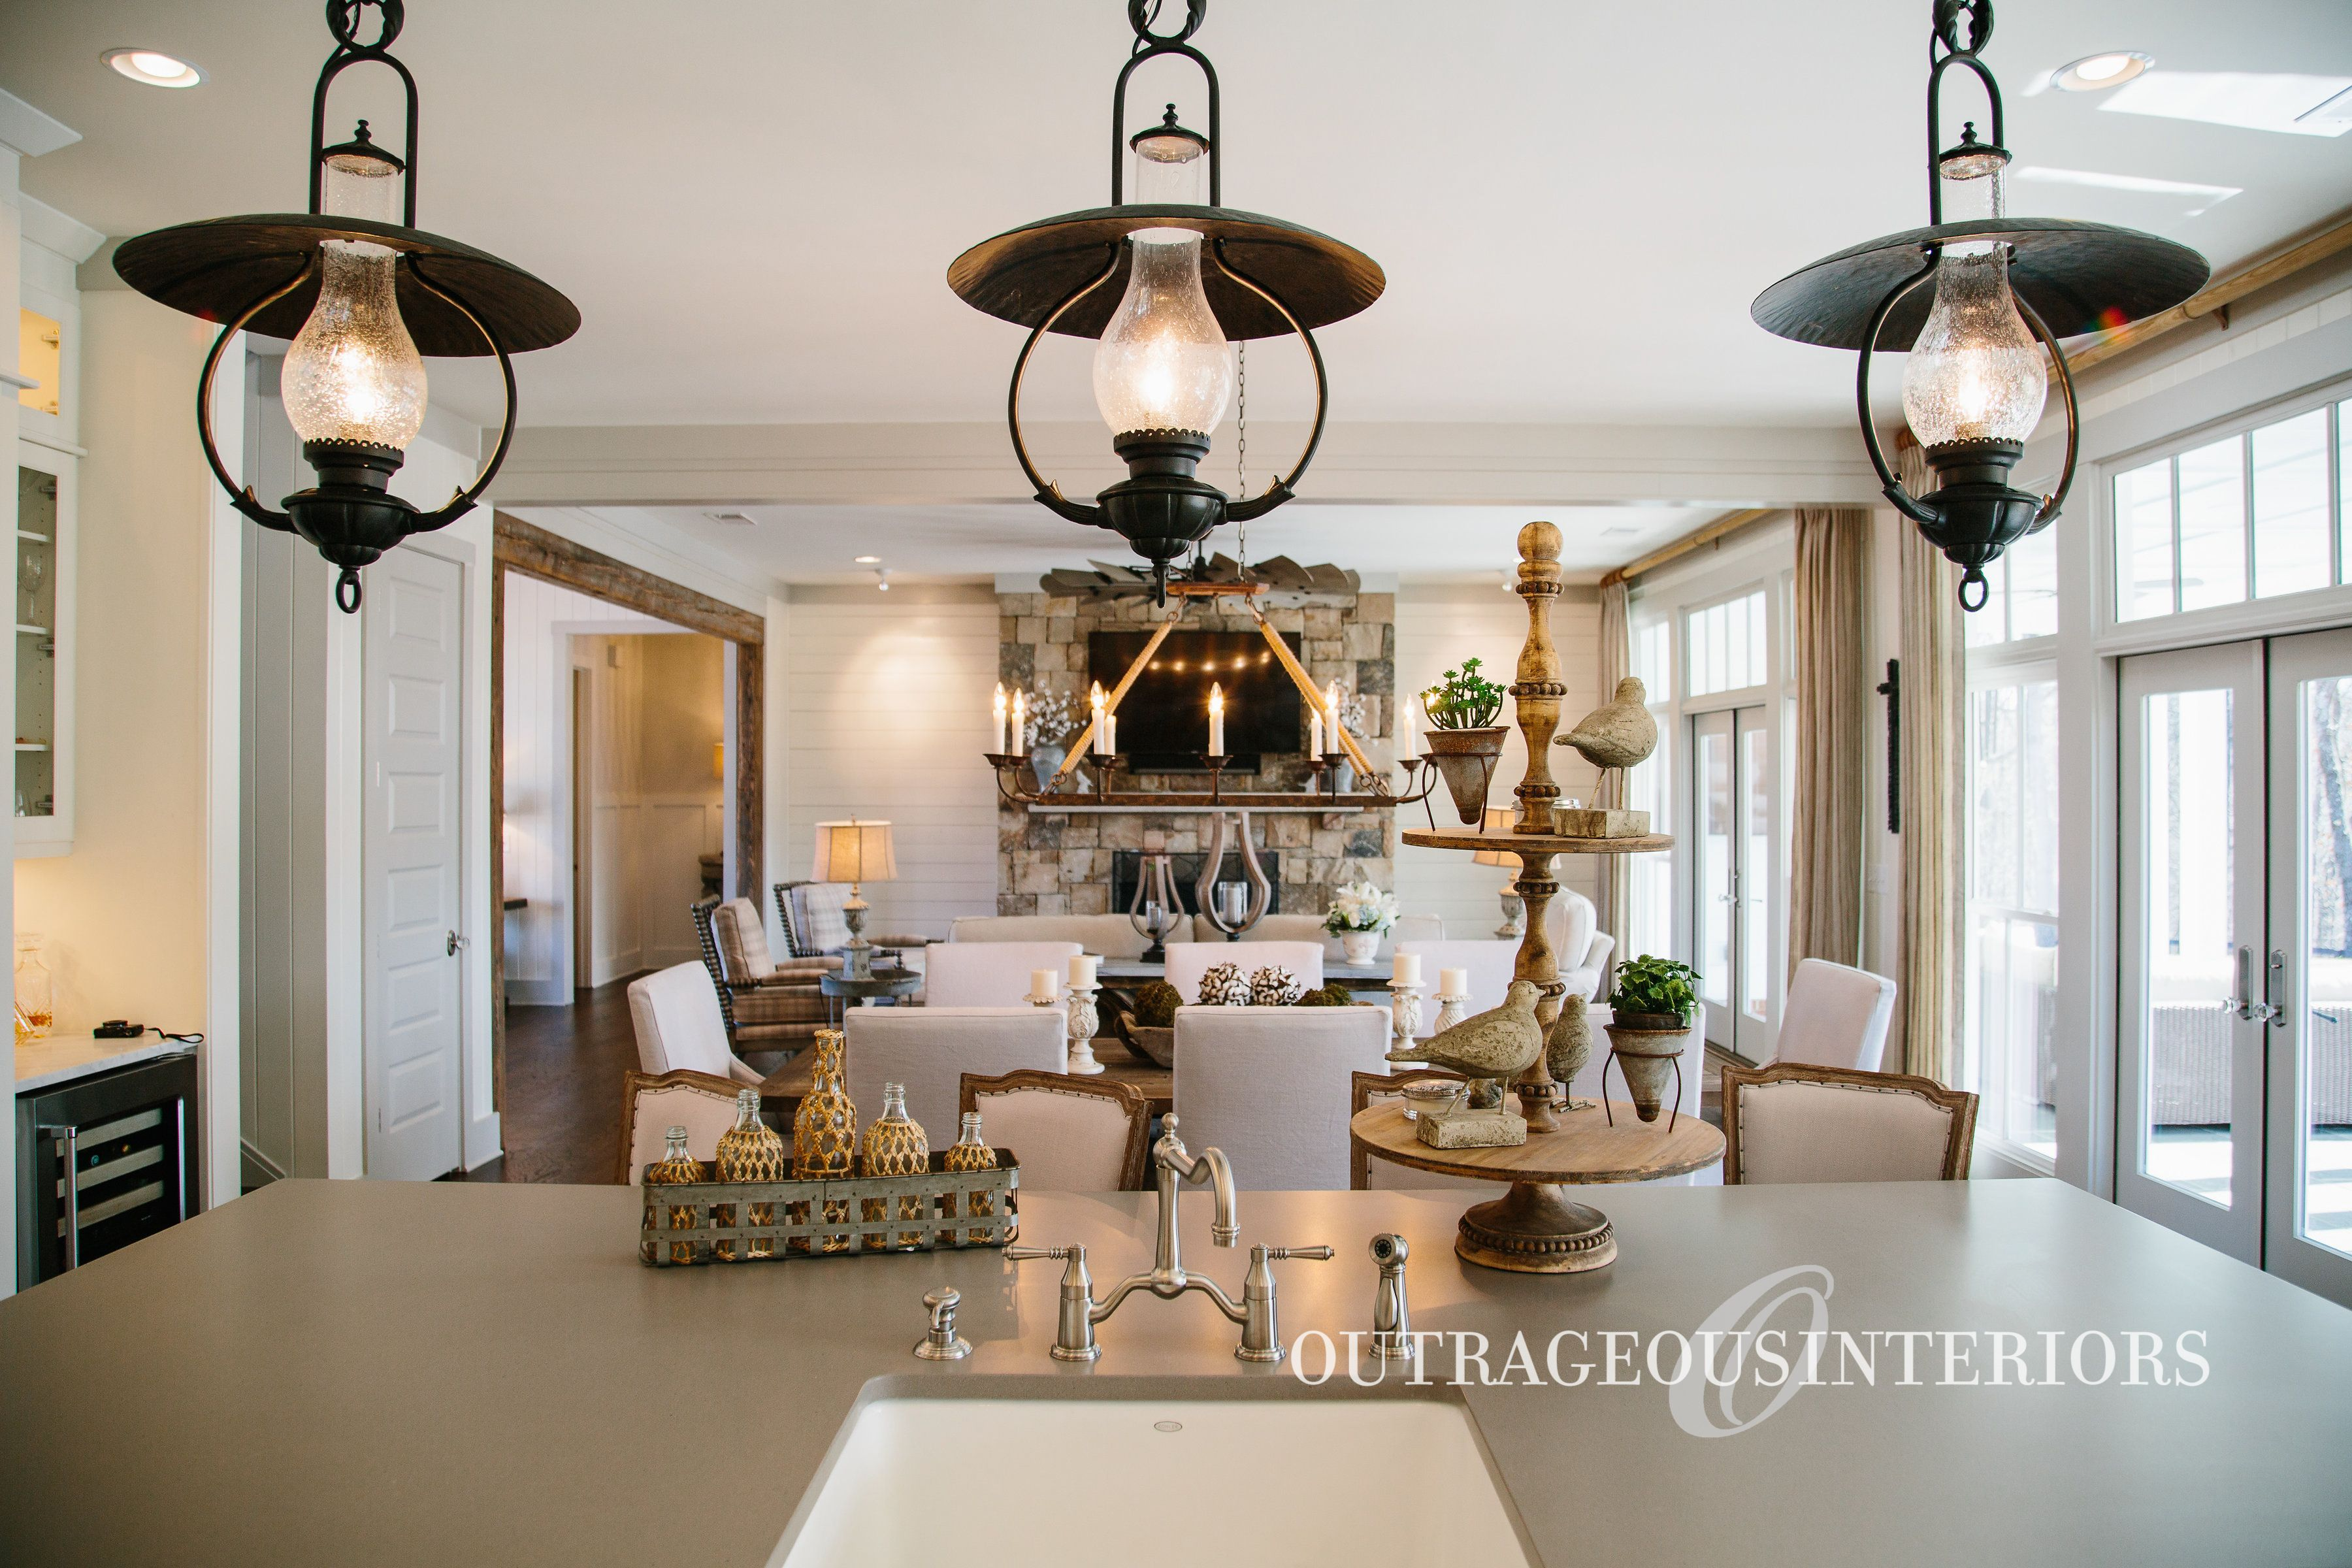 Adding three of the same pendant lights in a row adds trendy style ...